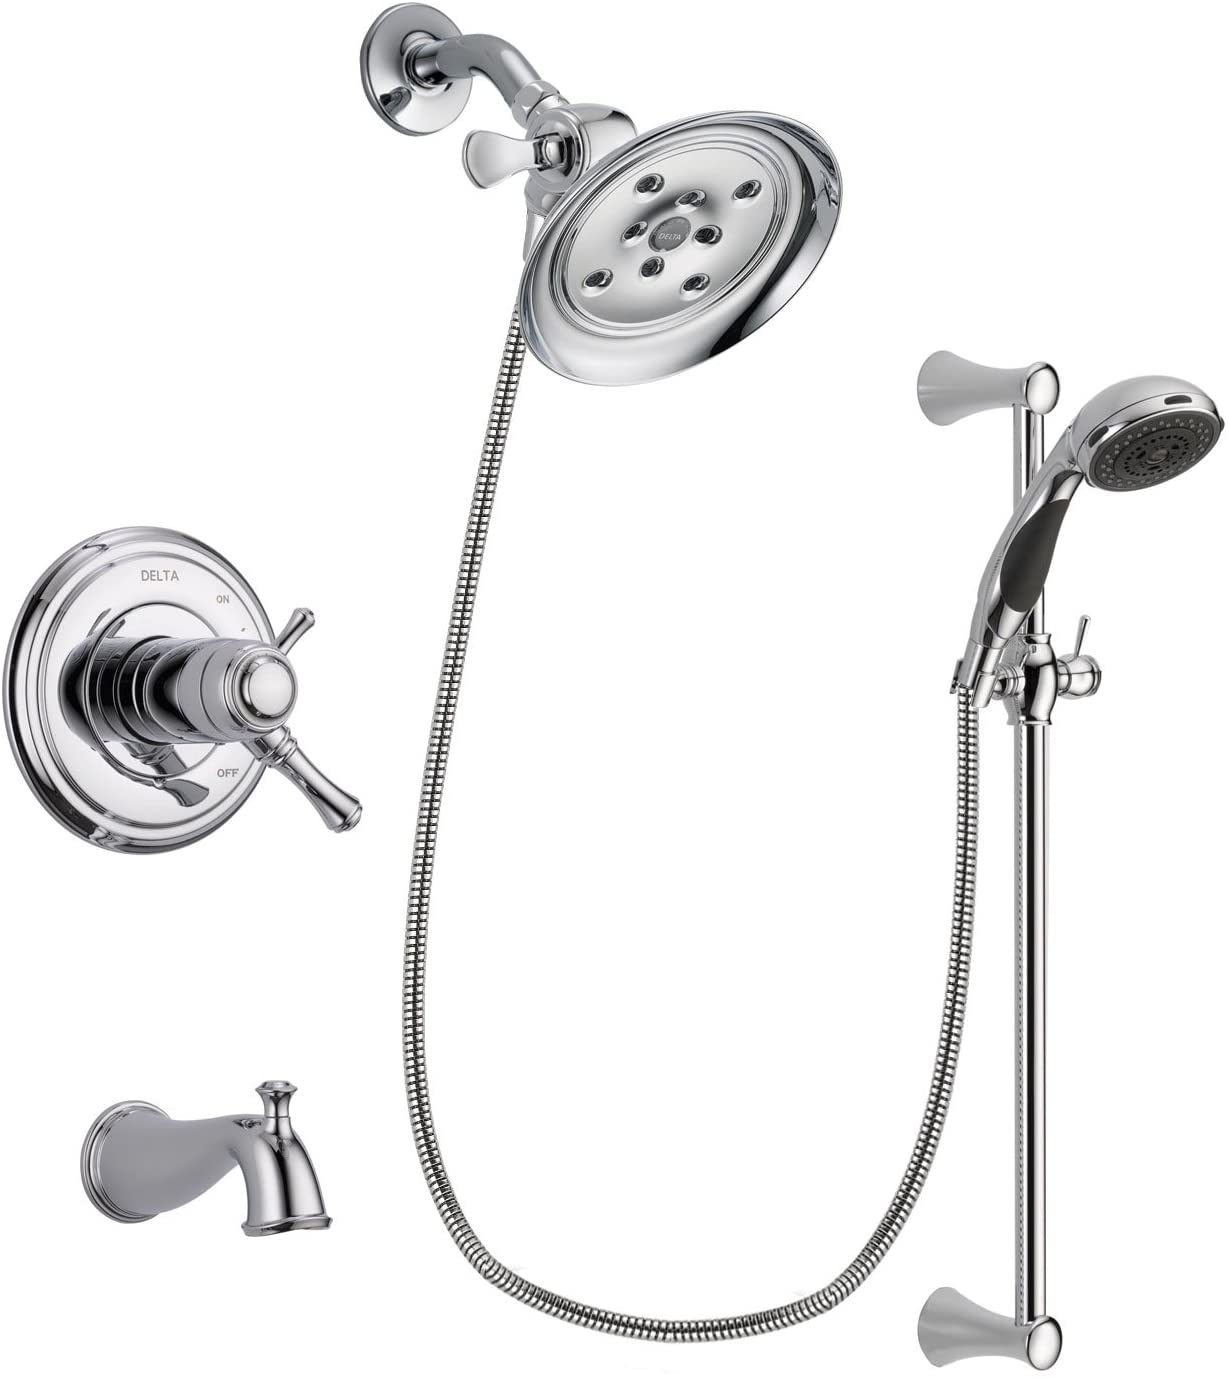 Delta Cassidy Chrome Thermostatic Tub and Shower Faucet System with Large Rain Showerhead and 5-Spray Wall Mount Slide Bar with Personal Handheld Shower Includes Rough-in Valve and Tub Spout DSP0773V